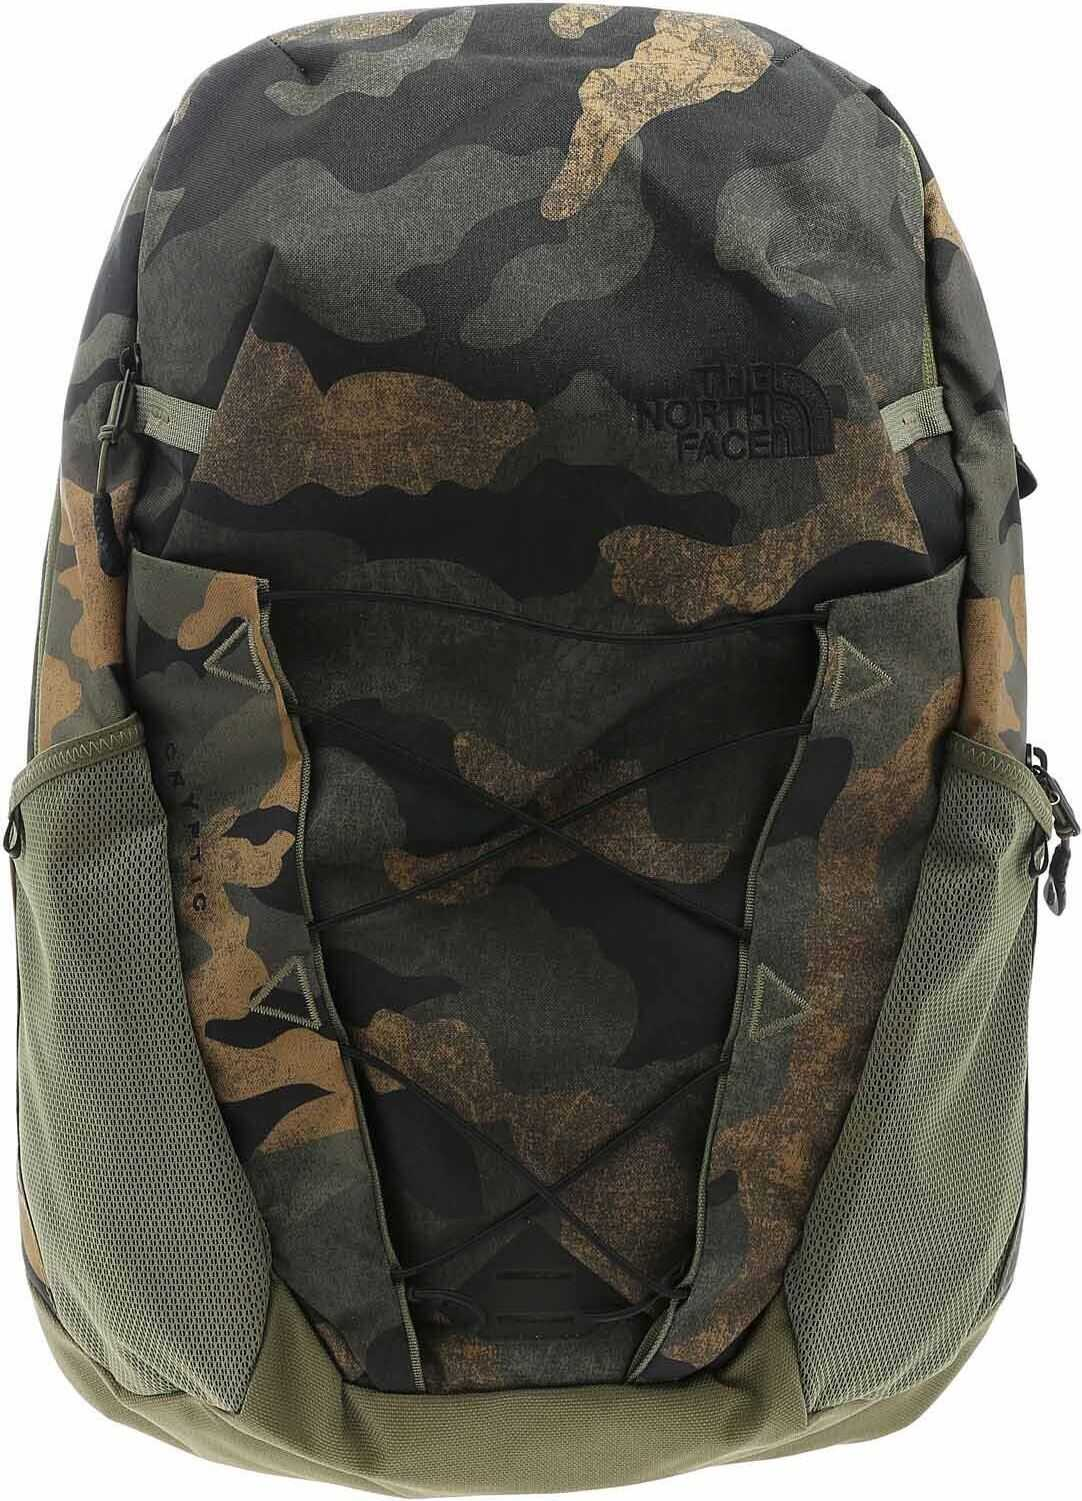 Cryptic Backpack In Green Camo Color thumbnail